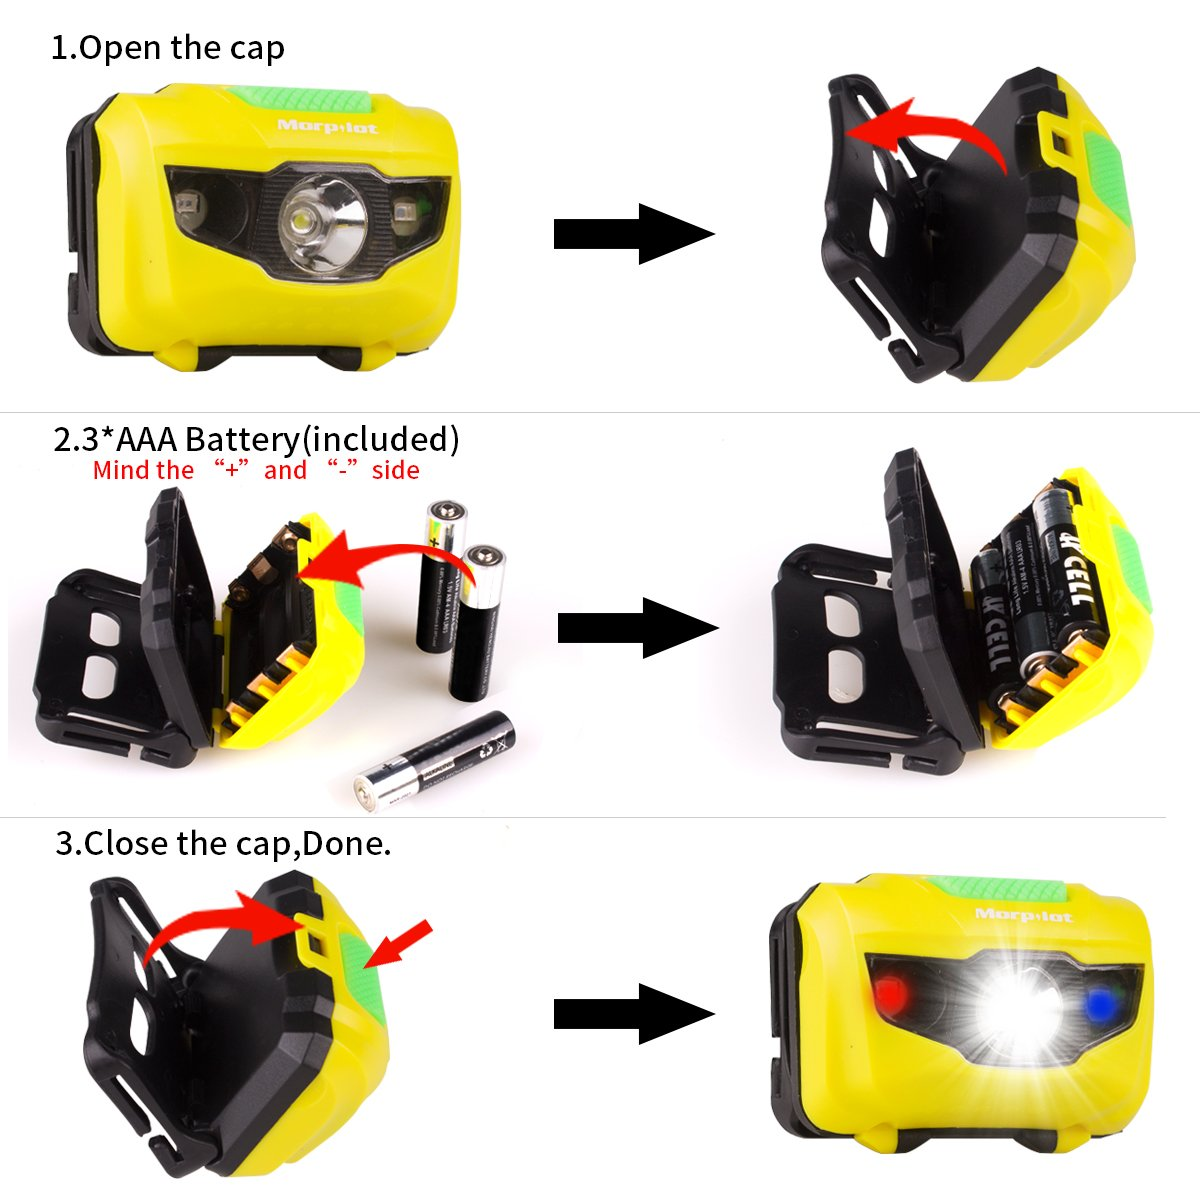 Morpilot LED Headlamp, Super Bright 180 Lumen, 5 Modes Emergency Flashlight Headlight, Waterproof Lightweight with SOS Strobe for Camping, Caving, Hiking, Walking, 3 Packs, 9 AAA Batteries Incl